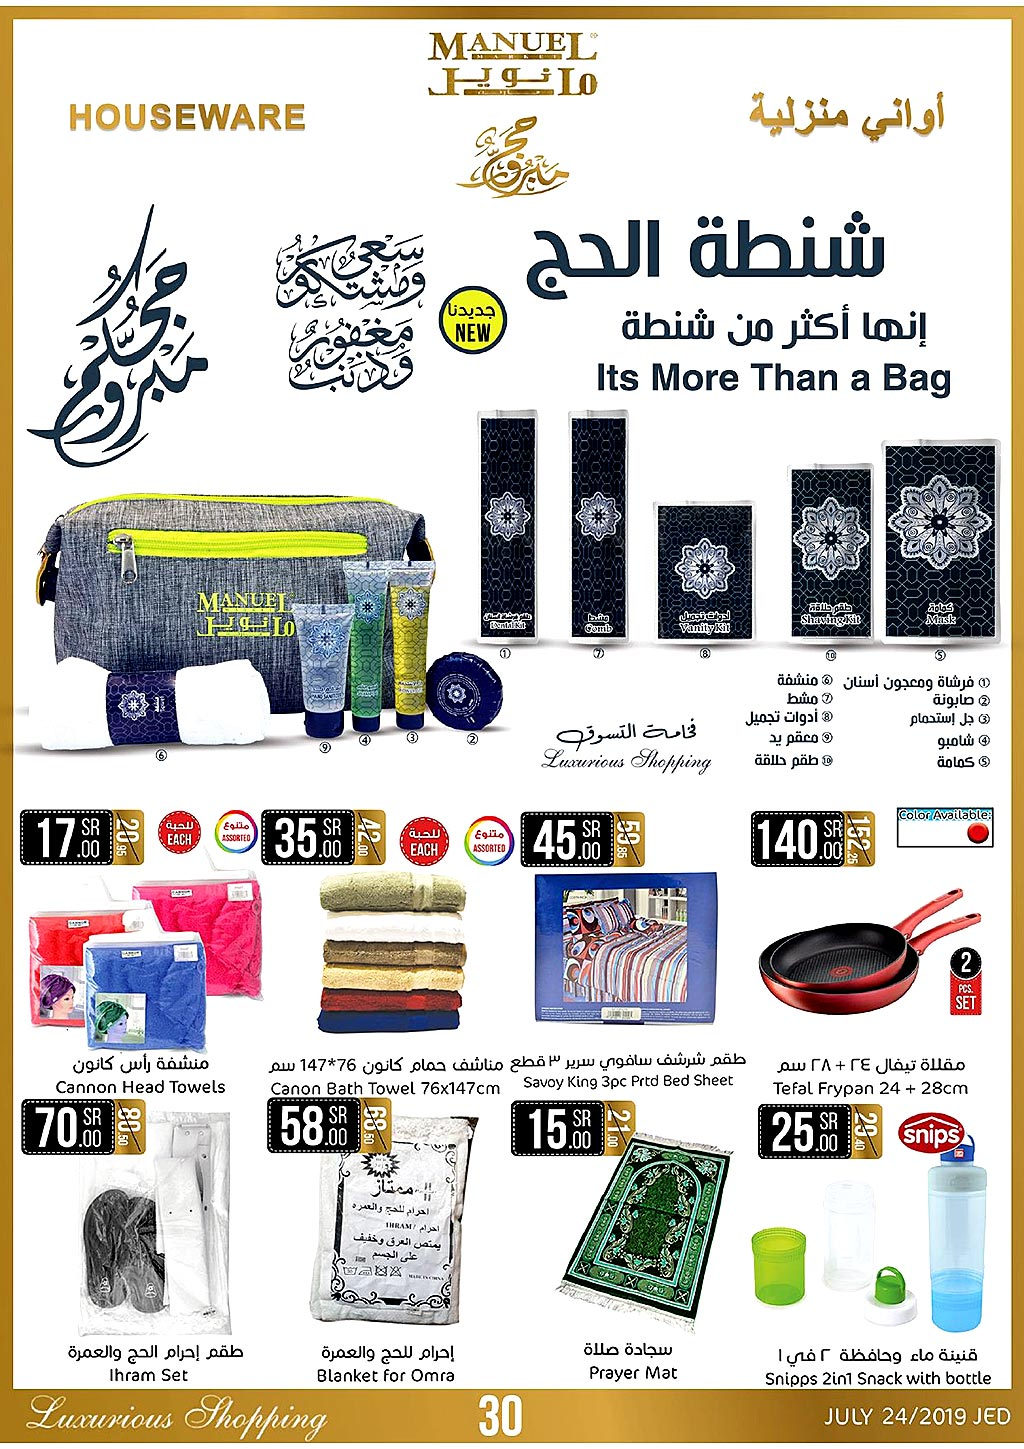 manuel-market offers from 24july to 30july 2019 page number 30 عروض مانويل ماركت من 24 يوليو حتى 30 يوليو 2019 صفحة رقم 30